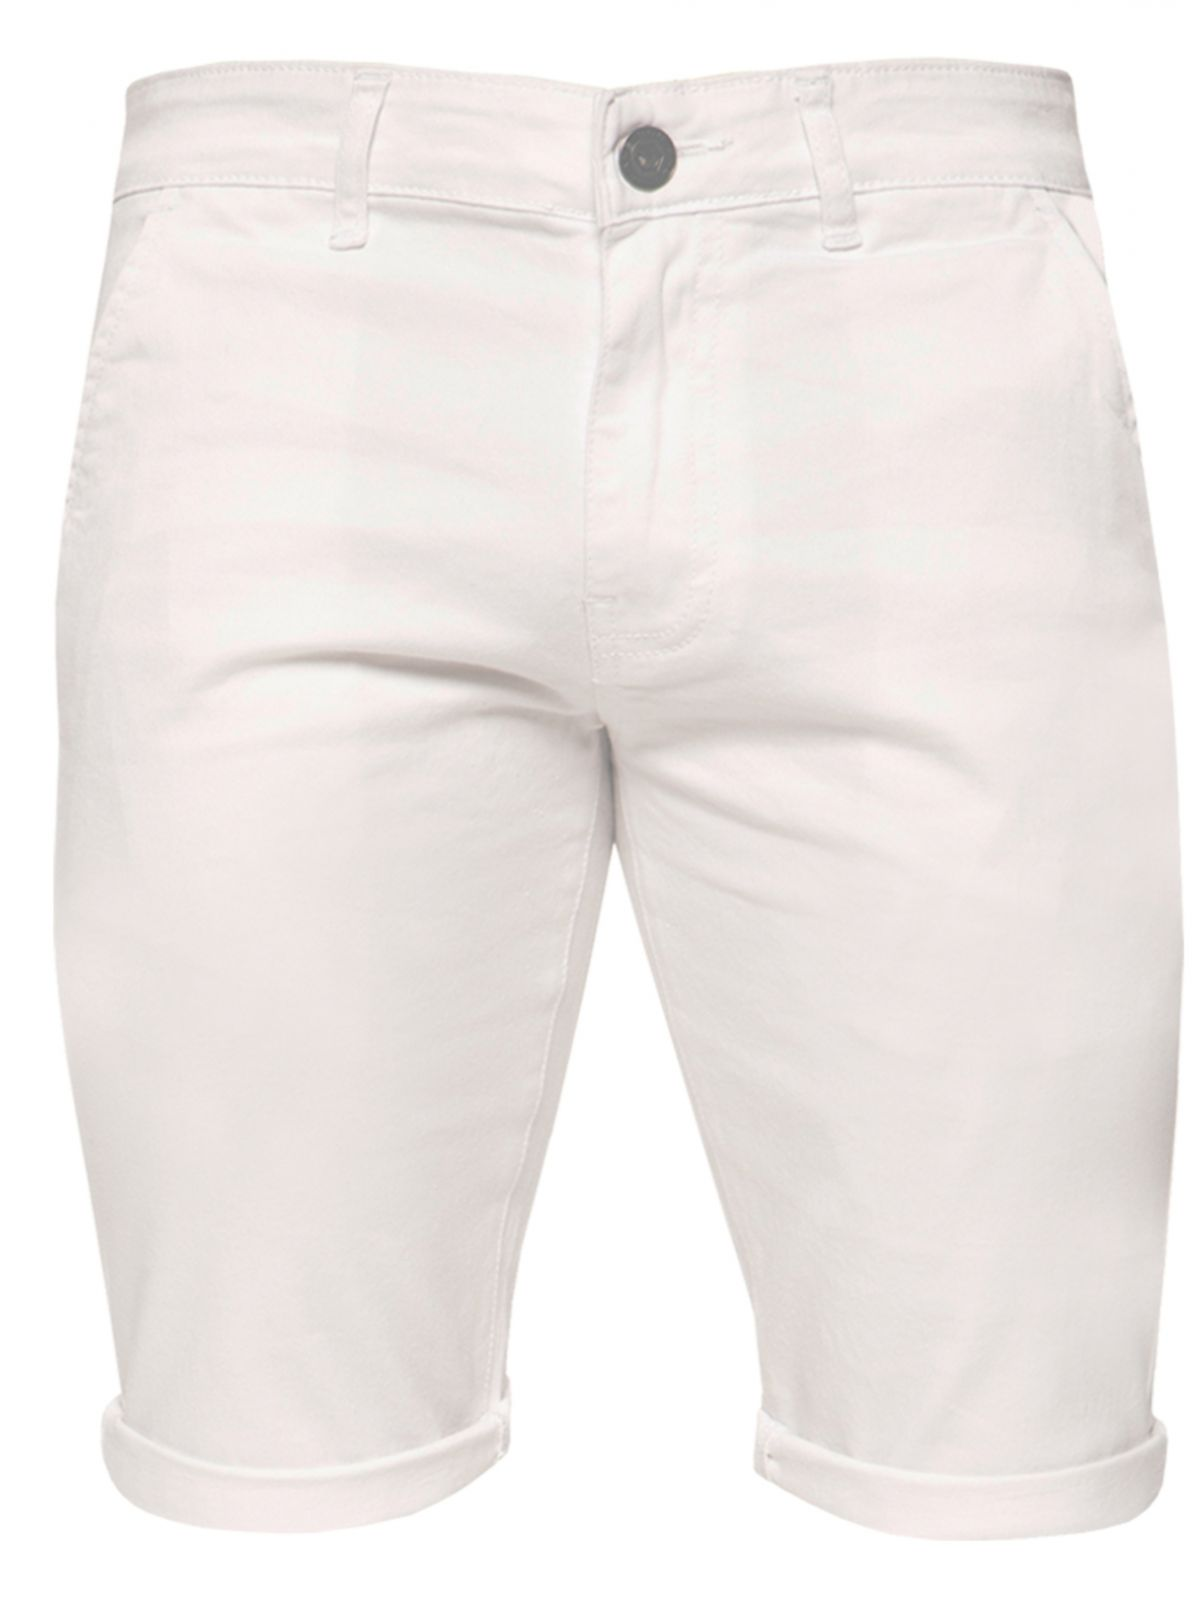 Mens Slim Fit Stretch Chino Shorts | Enzo Designer Menswear